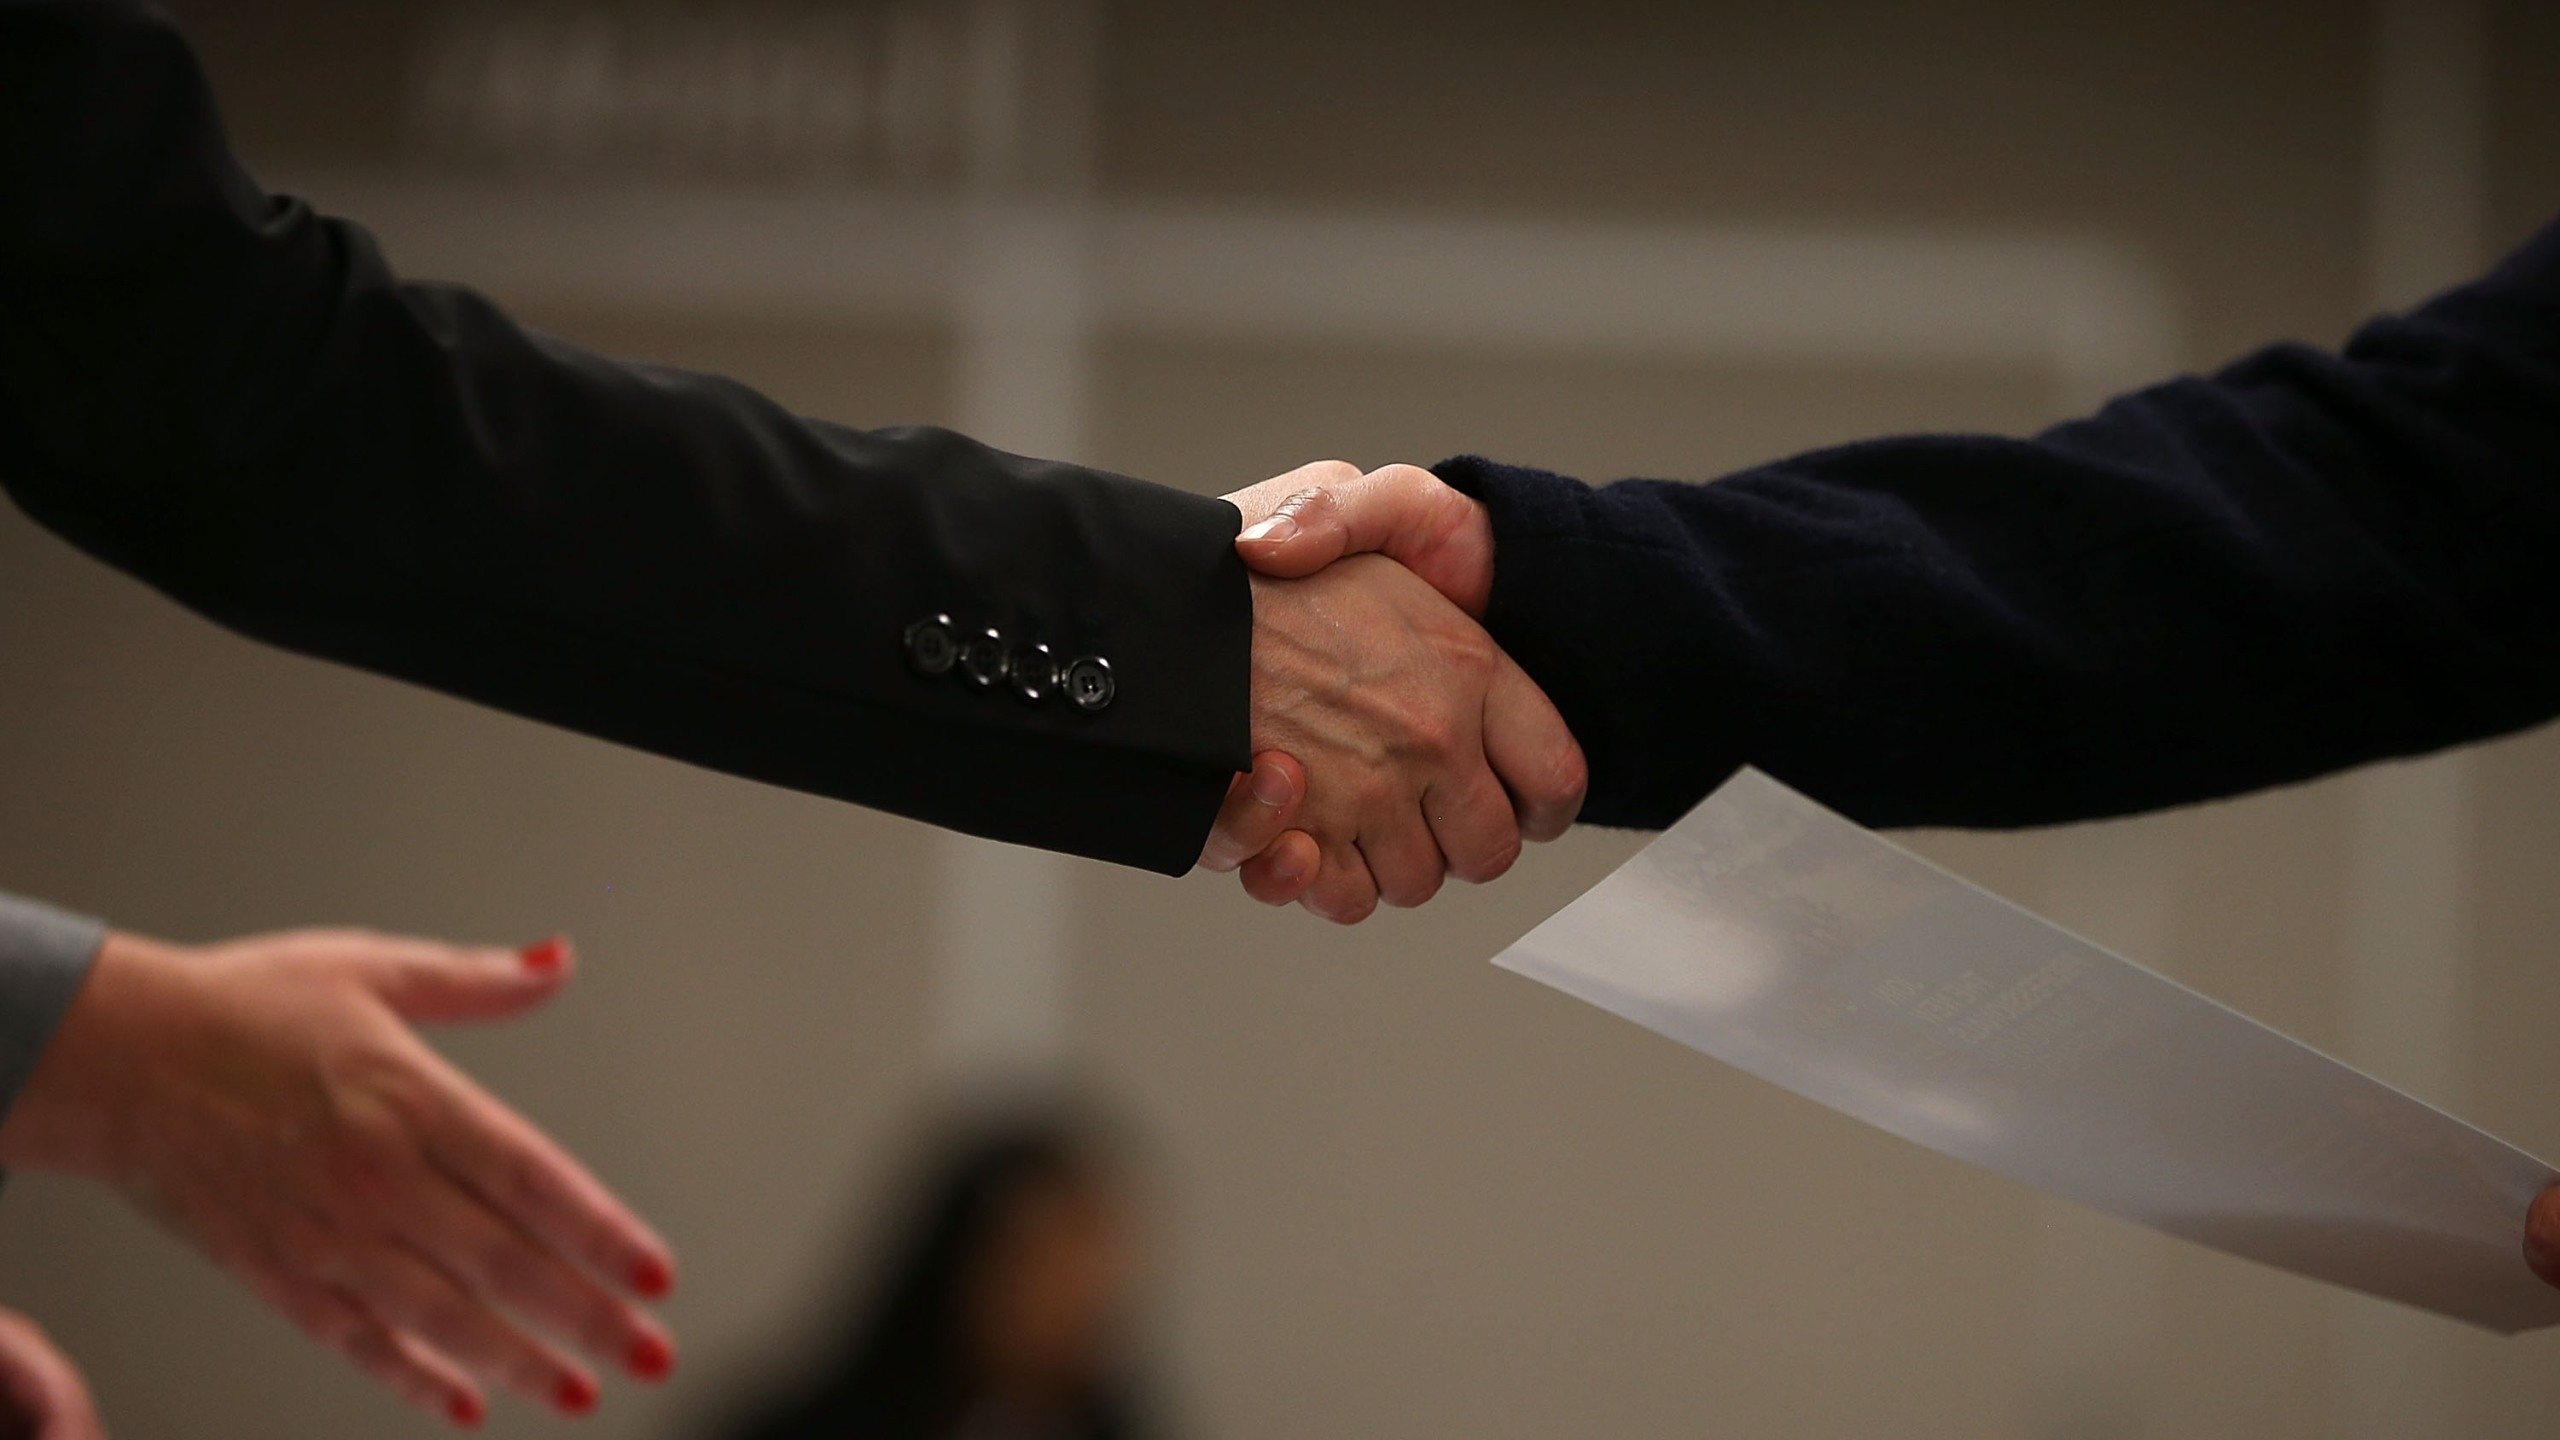 SAN FRANCISCO, CA - JUNE 04: A job seeker shakes hands with a recruiter during a HireLive career fair on June 4, 2015 in San Francisco, California. According to a report by payroll processor ADP, 201,000 jobs were added by businesses in May. (Photo by Justin Sullivan/Getty Images)